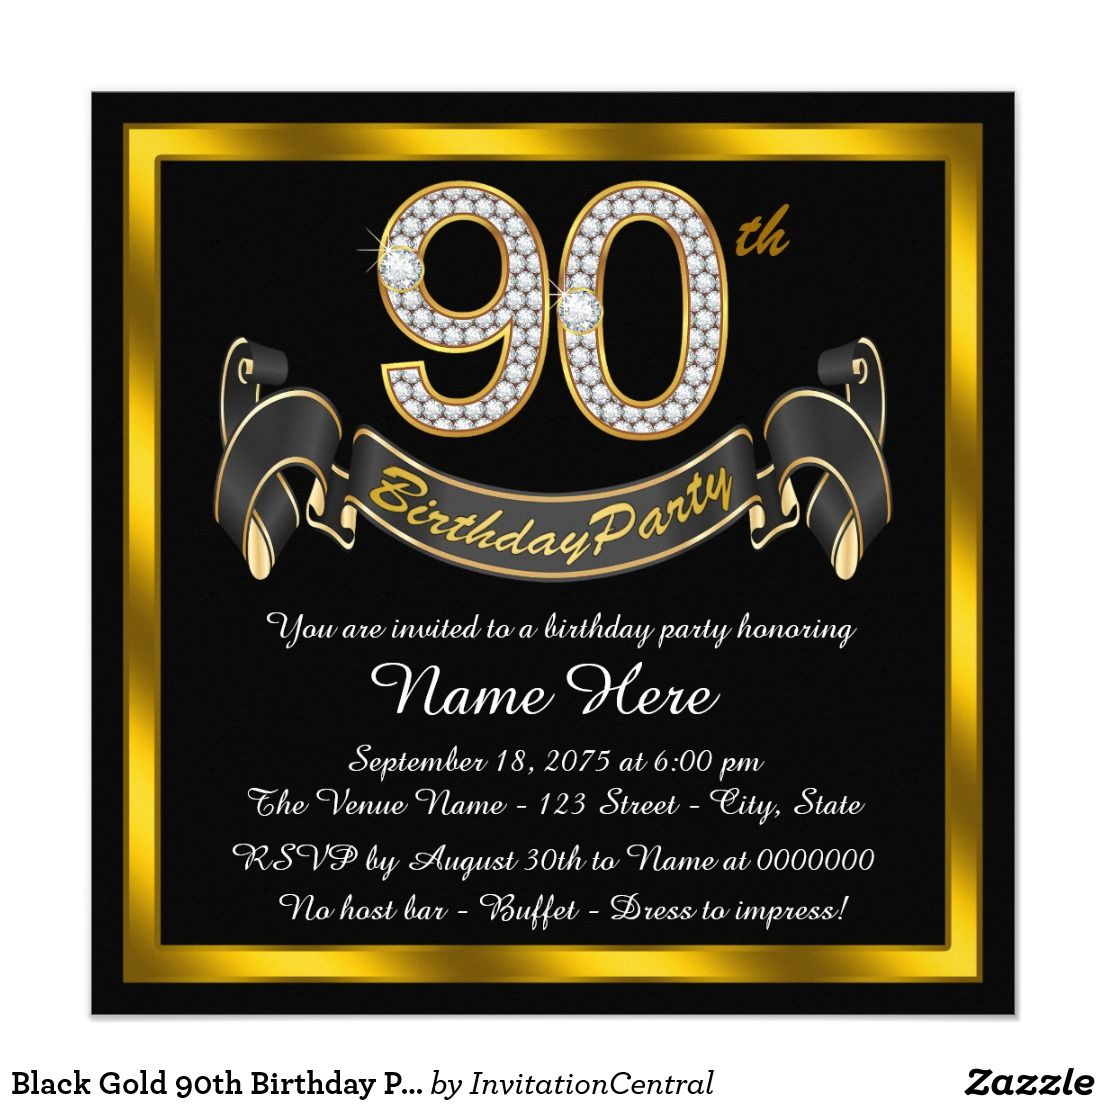 Black Gold 90th Birthday Party Card Elegant Invitation With Diamond Numbers And Banner On A Background